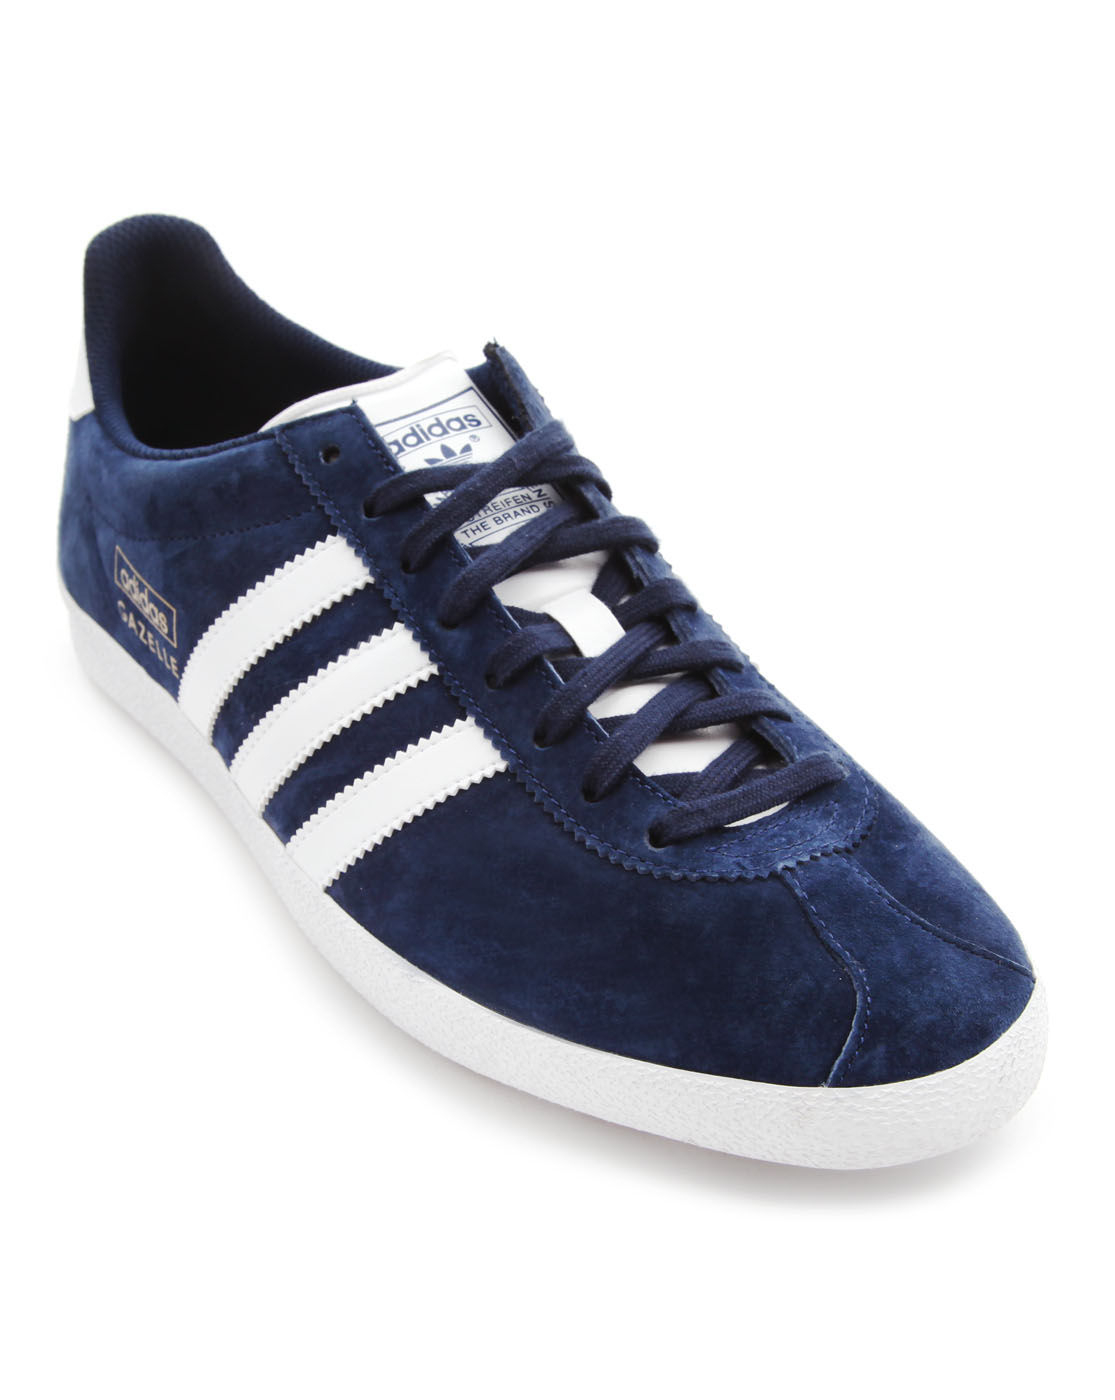 adidas originals gazelle og navy suede sneakers in blue for men lyst. Black Bedroom Furniture Sets. Home Design Ideas